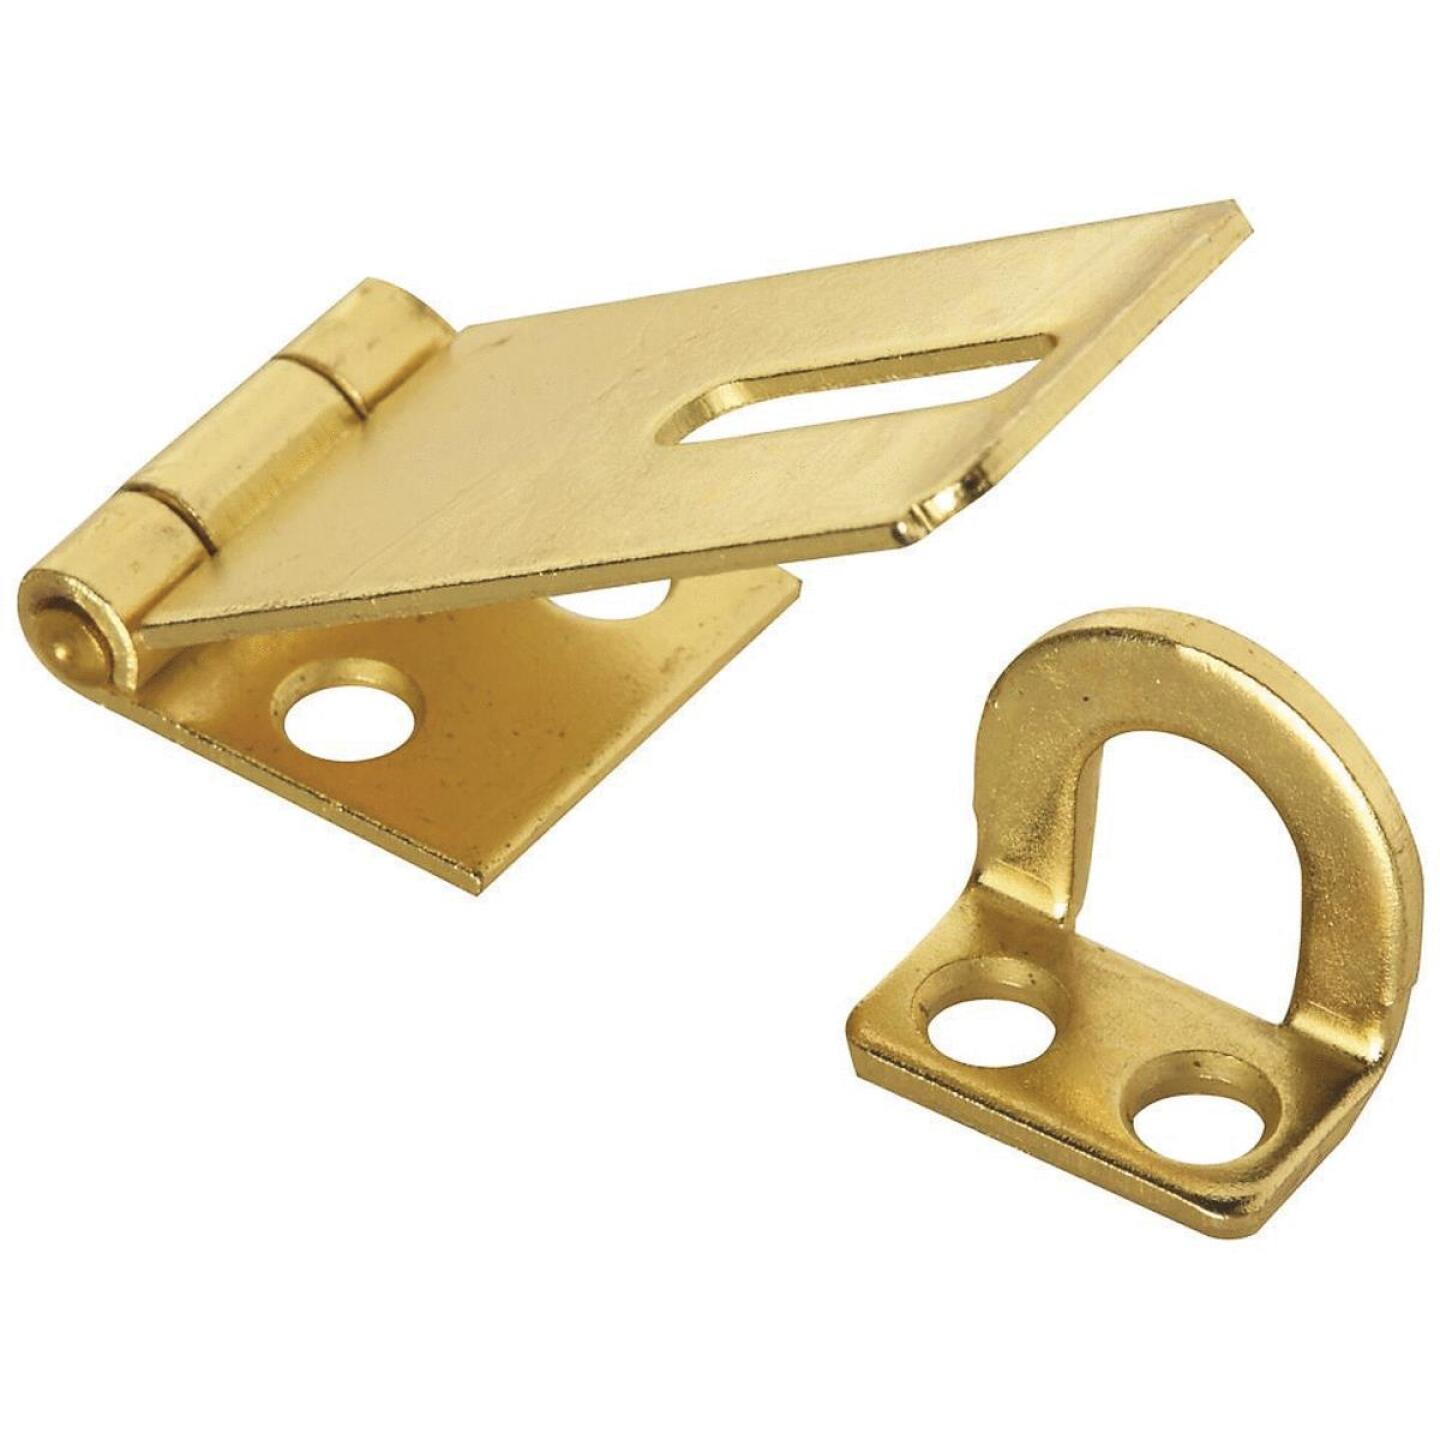 National 1-3/4 In. Brass Non-Swivel Safety Hasp Image 1